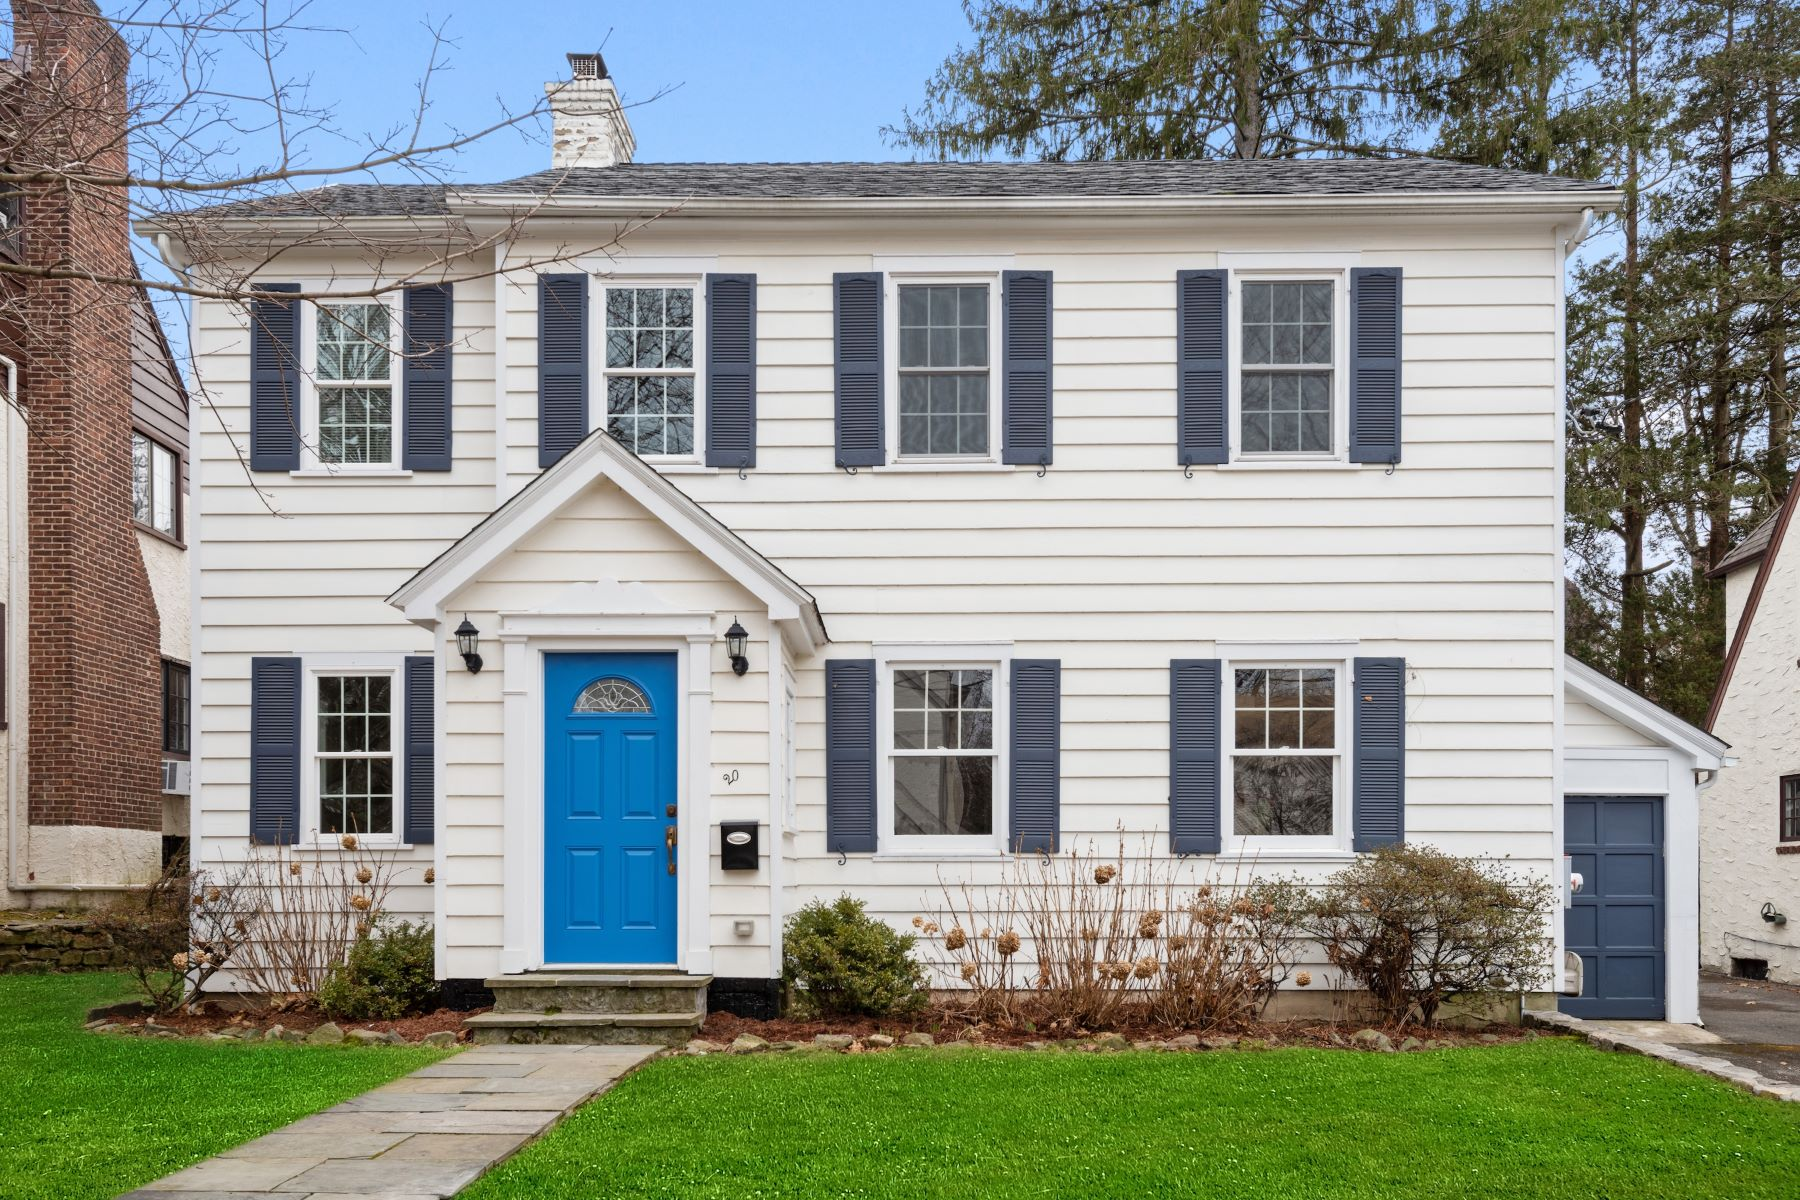 Single Family Homes for Active at 20 Cambridge Court 20 Cambridge Ct Larchmont, New York 10538 United States